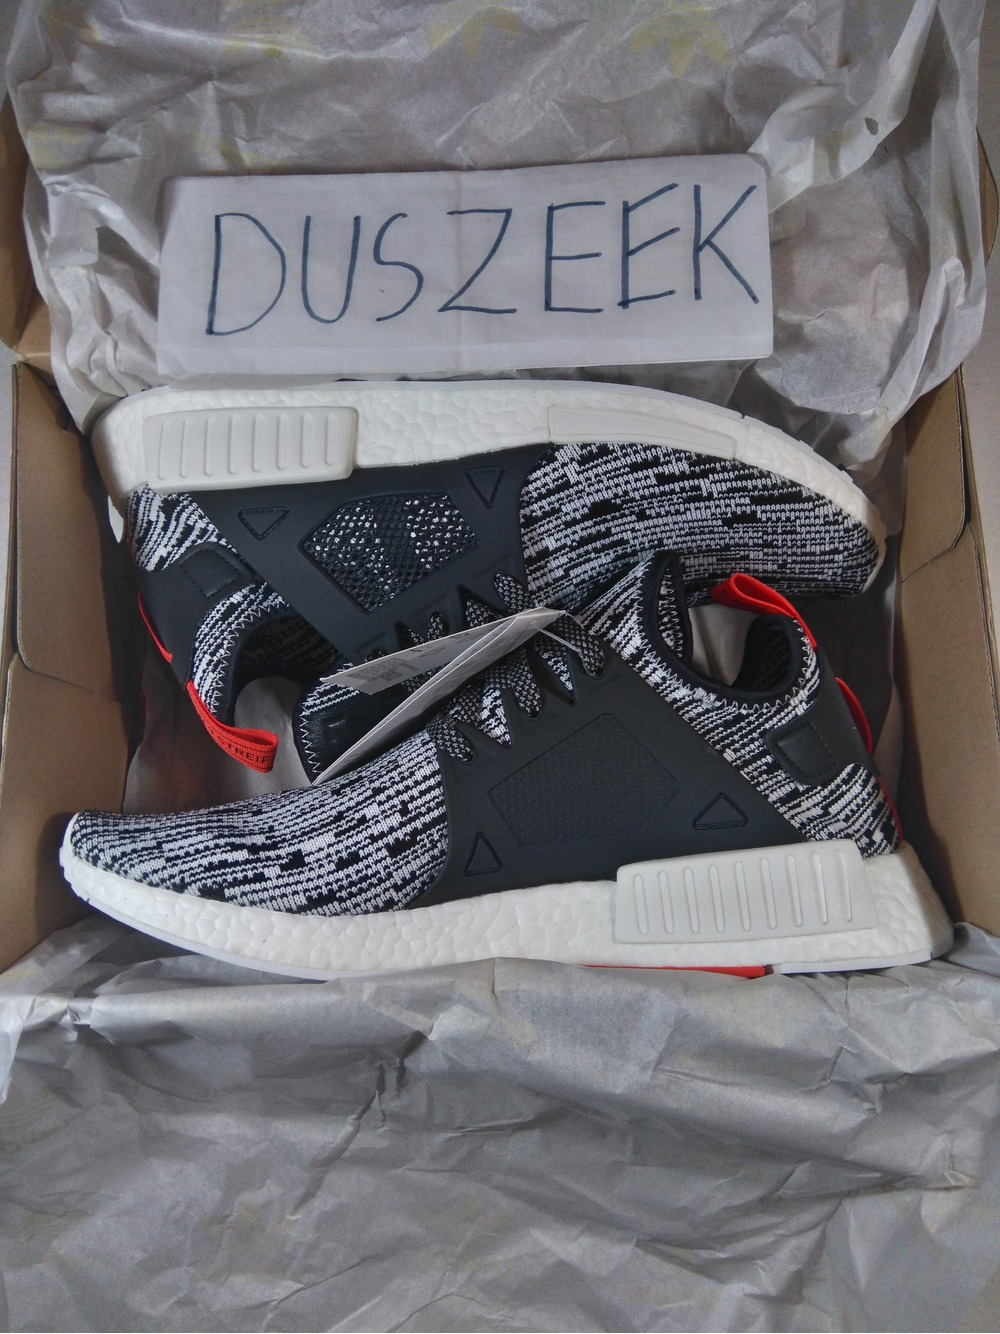 2018 New Arrival Nmd Xr1 Boost Duck Camo Black White Green